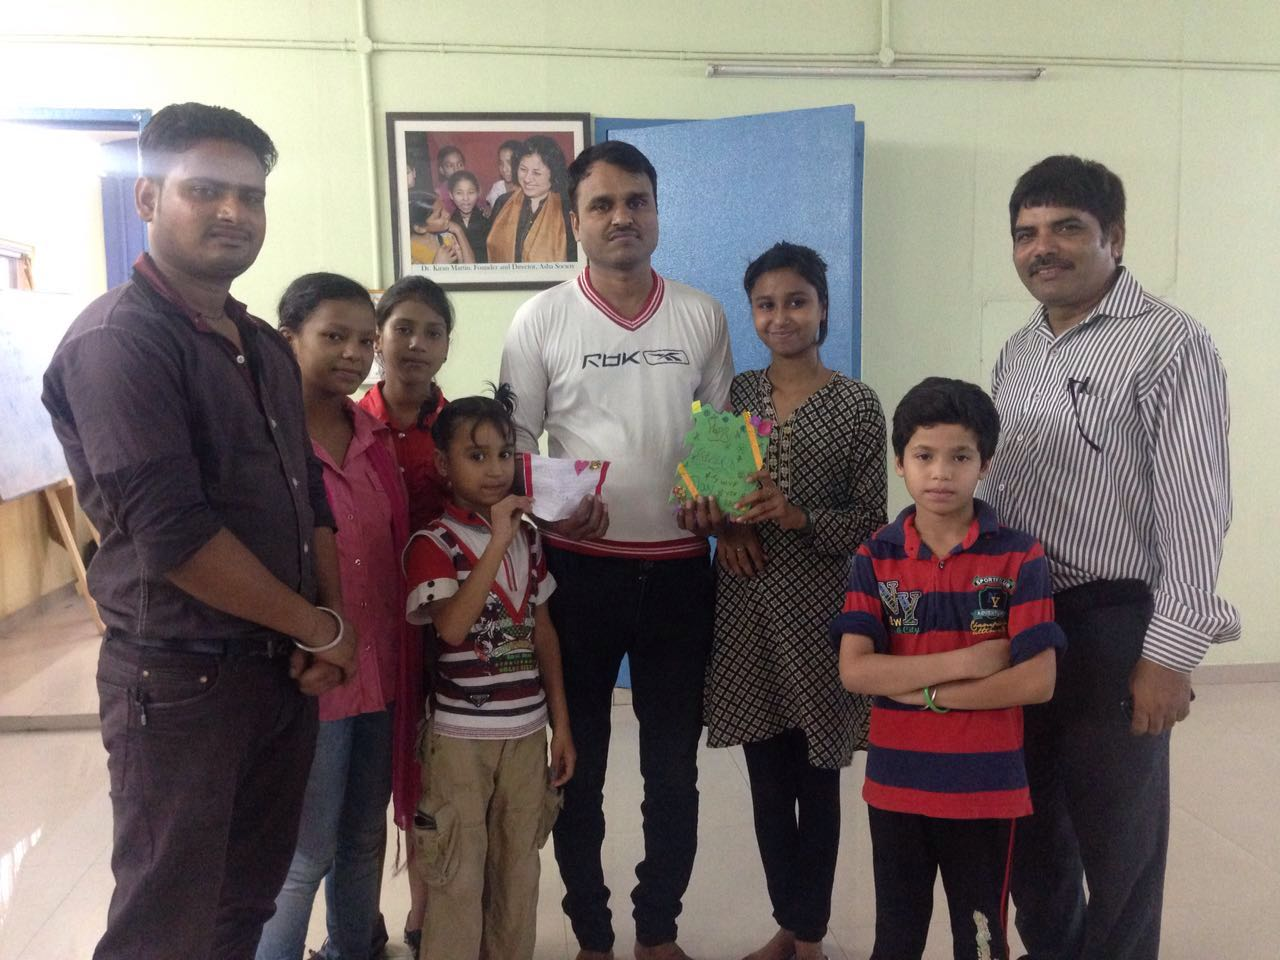 Team Leader David with Asha students and their parents during the celebration at Peeragarhi.